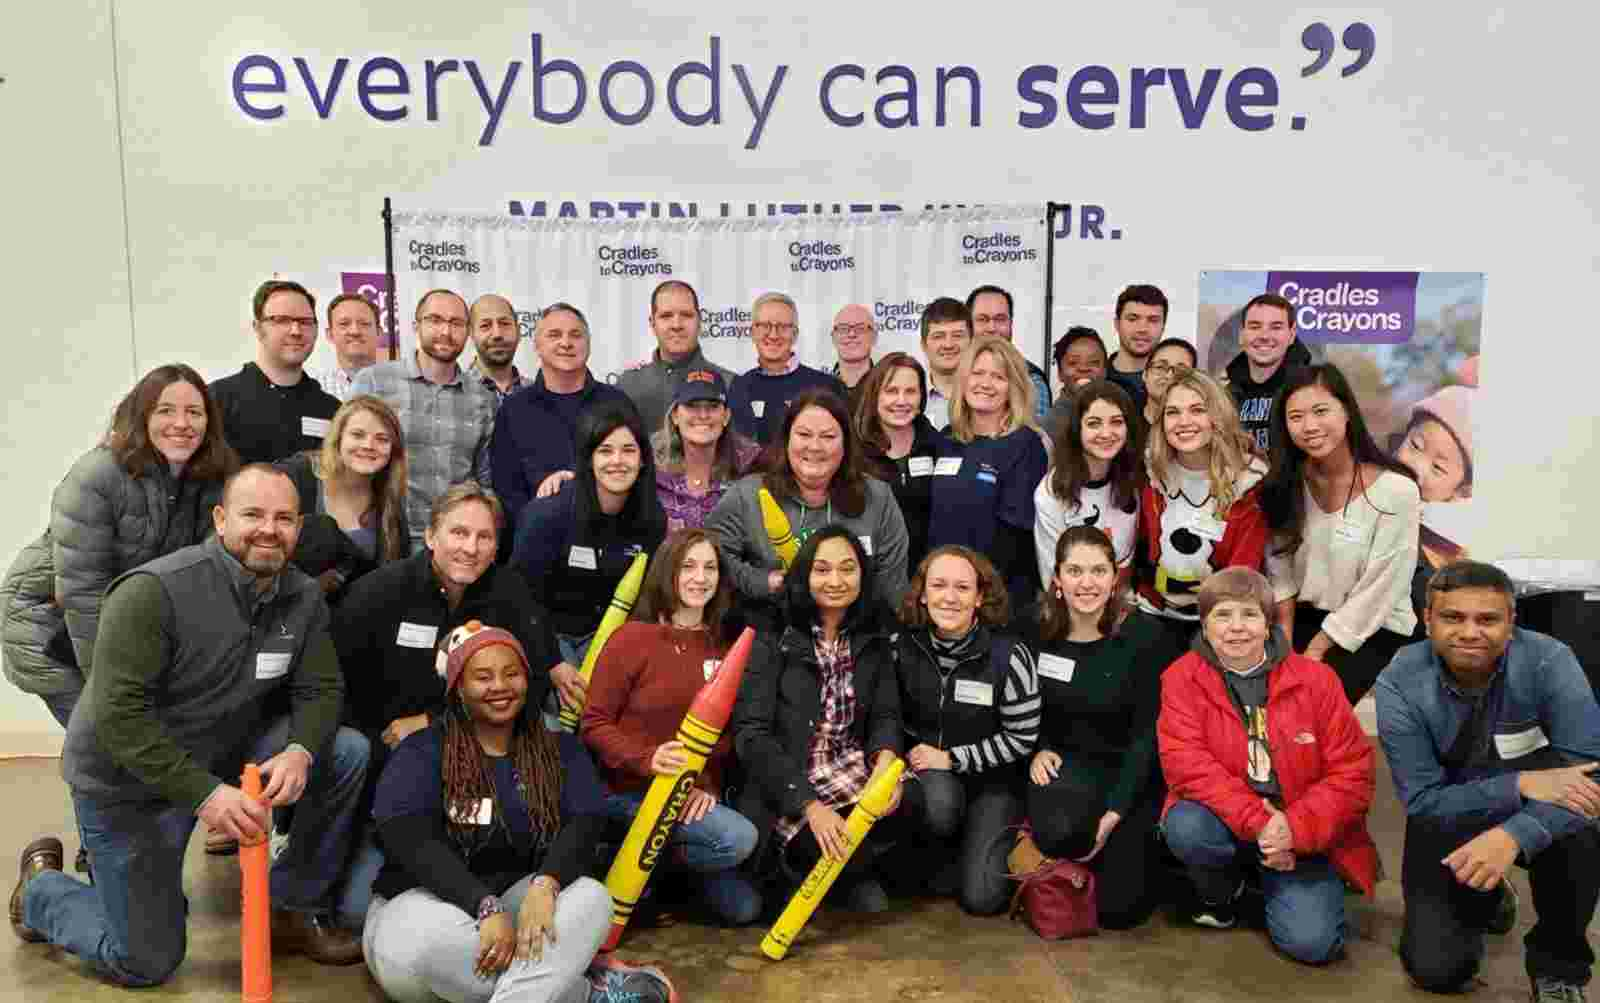 Group photo of Boston office volunteers at Cradles to Crayons event